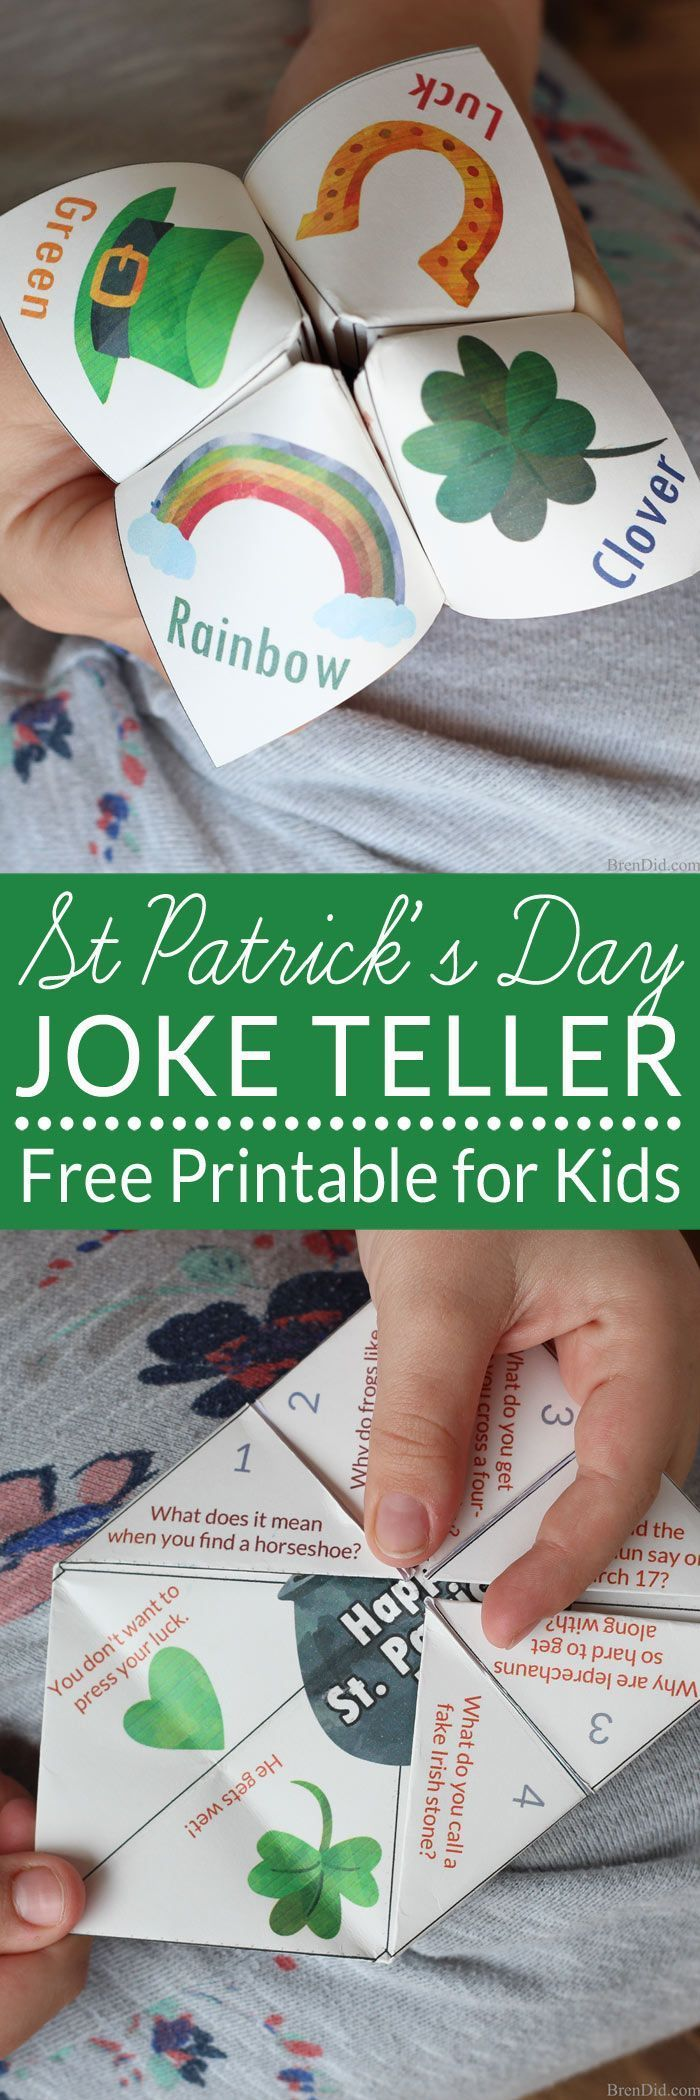 A joke teller is a great St. Patrick's Day treat for kids. The free printable project (with easy folding instructions) takes less than 5 minutes to complete. The joke teller (sometimes called a cootie catcher or fortune teller) contains 8 fun St. Patrick's Day jokes for kids and fun Saint Patrick's Day designs. It's the perfect non-candy treat for all ages.